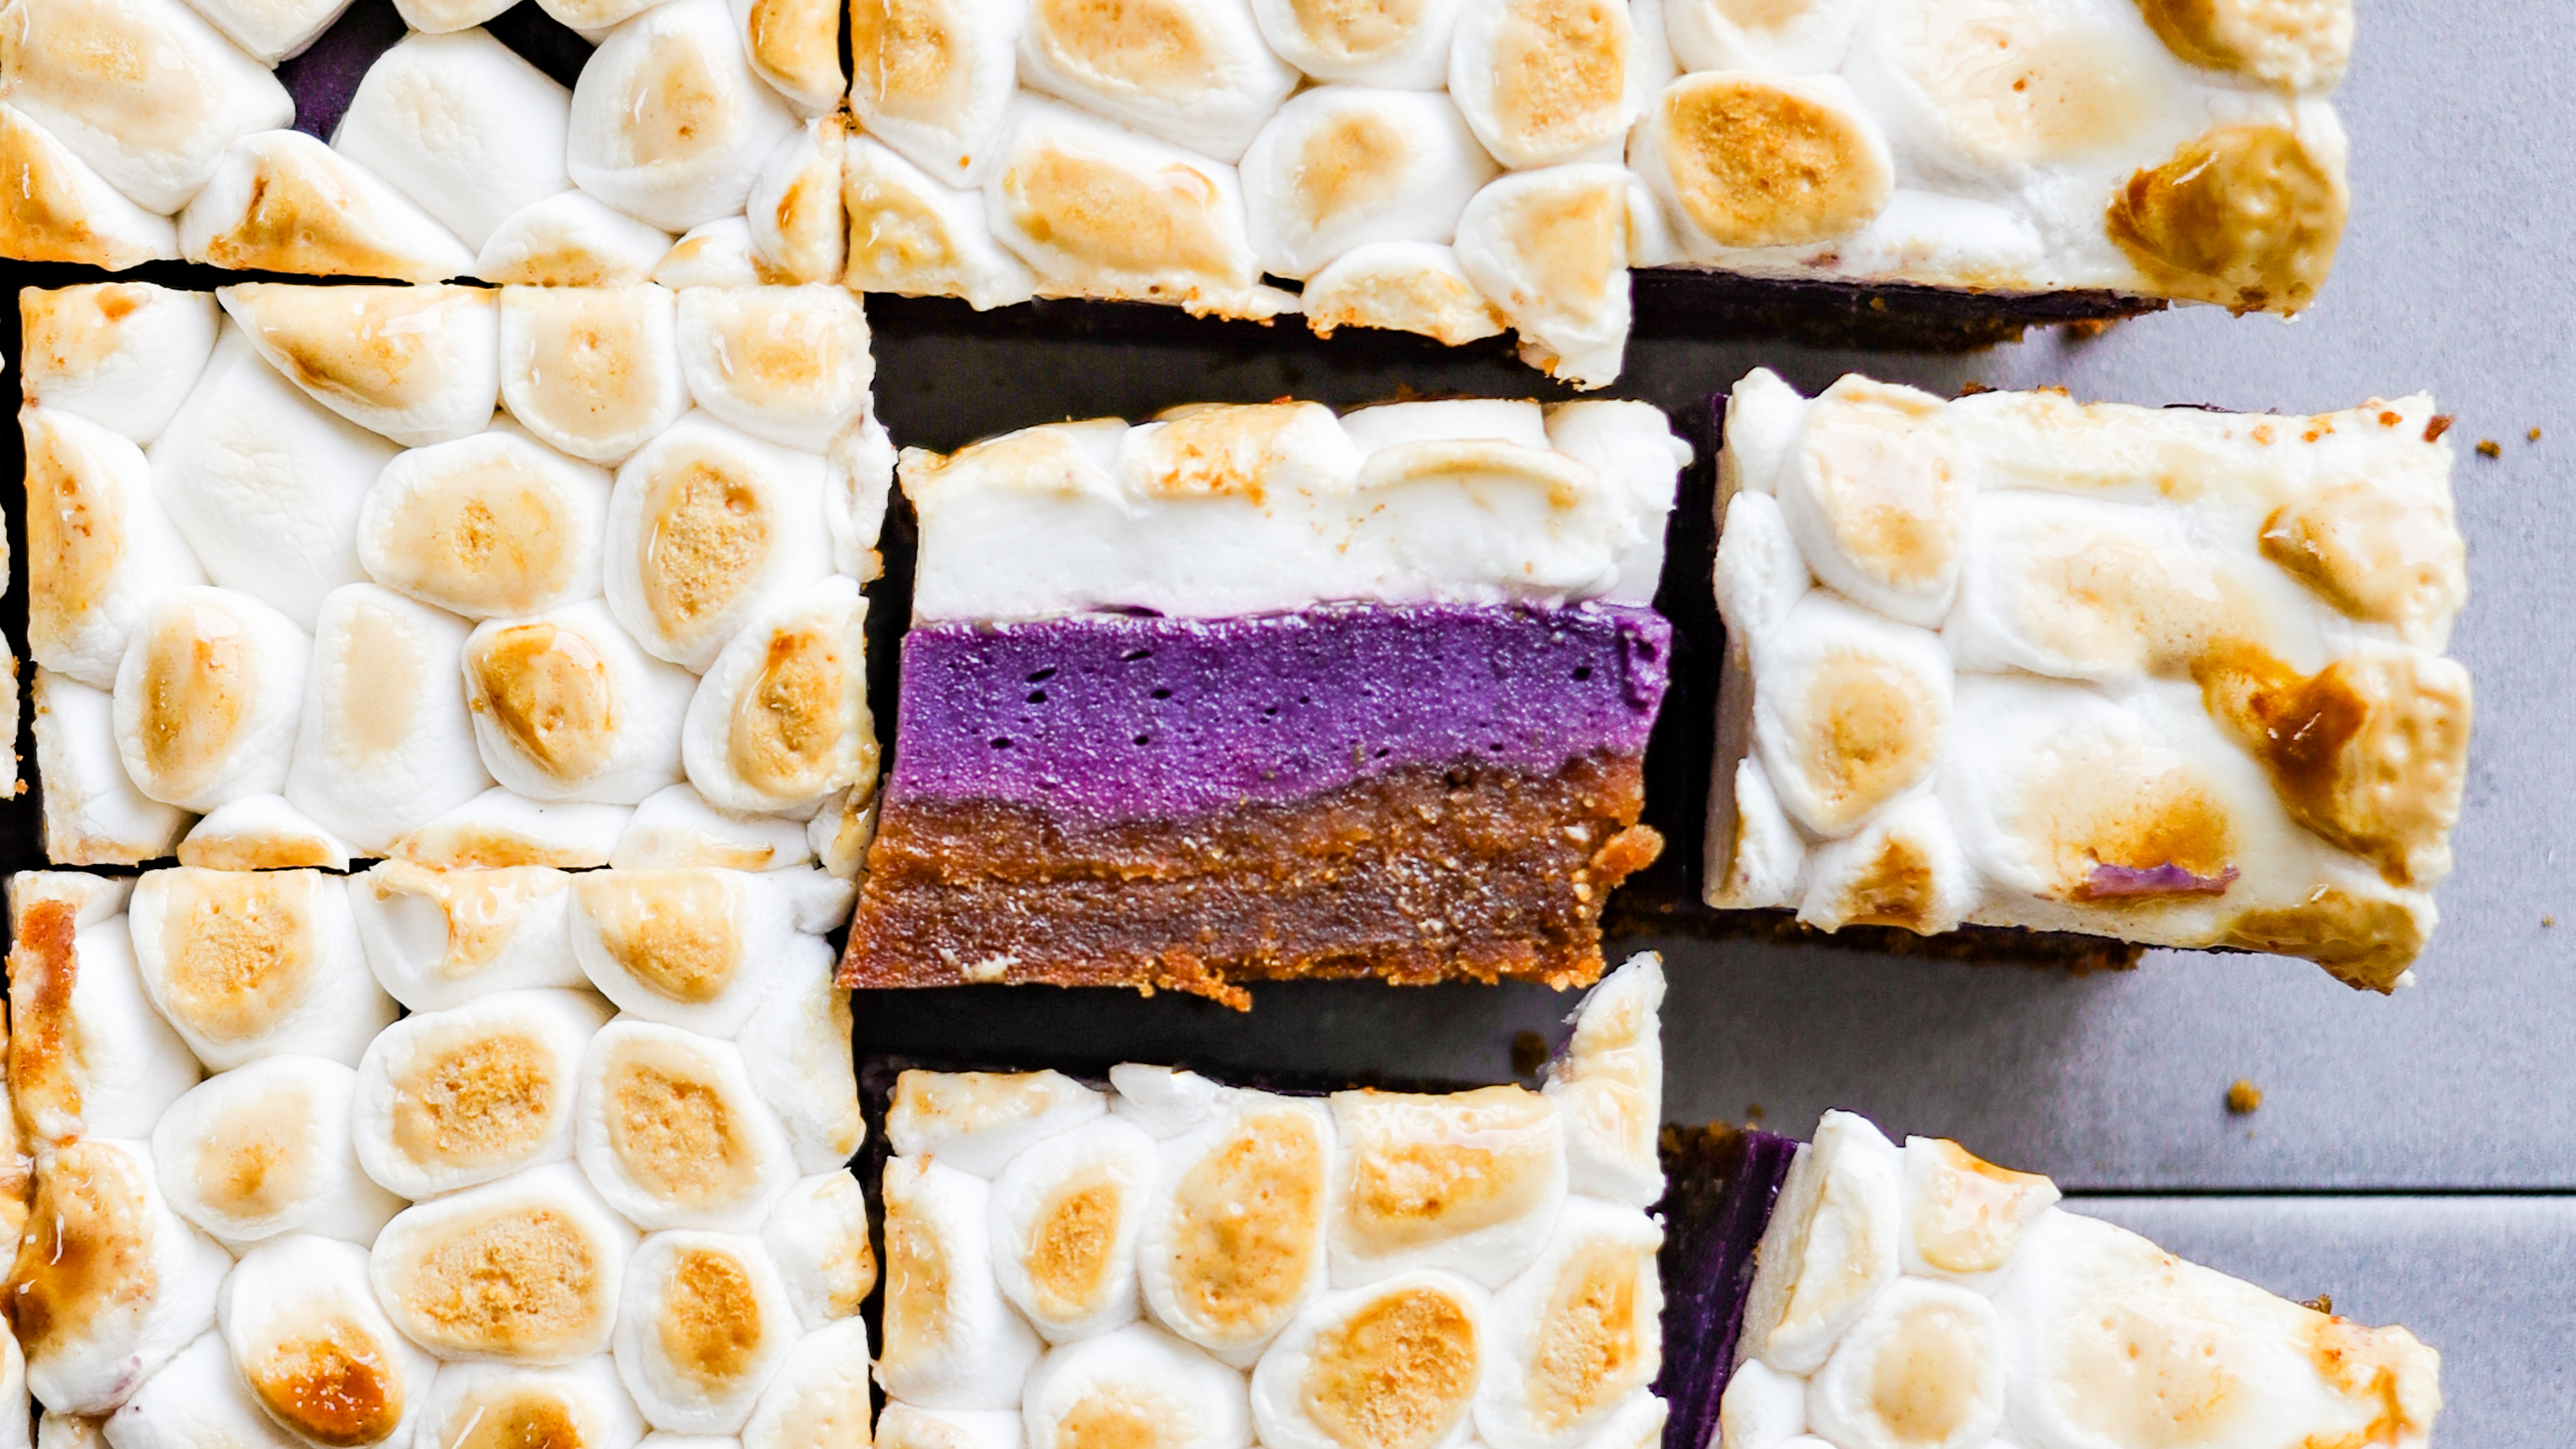 AMAZING vegan sweet potato bars for your holiday table! They make a beautiful dessert and side dish all rolled into one!